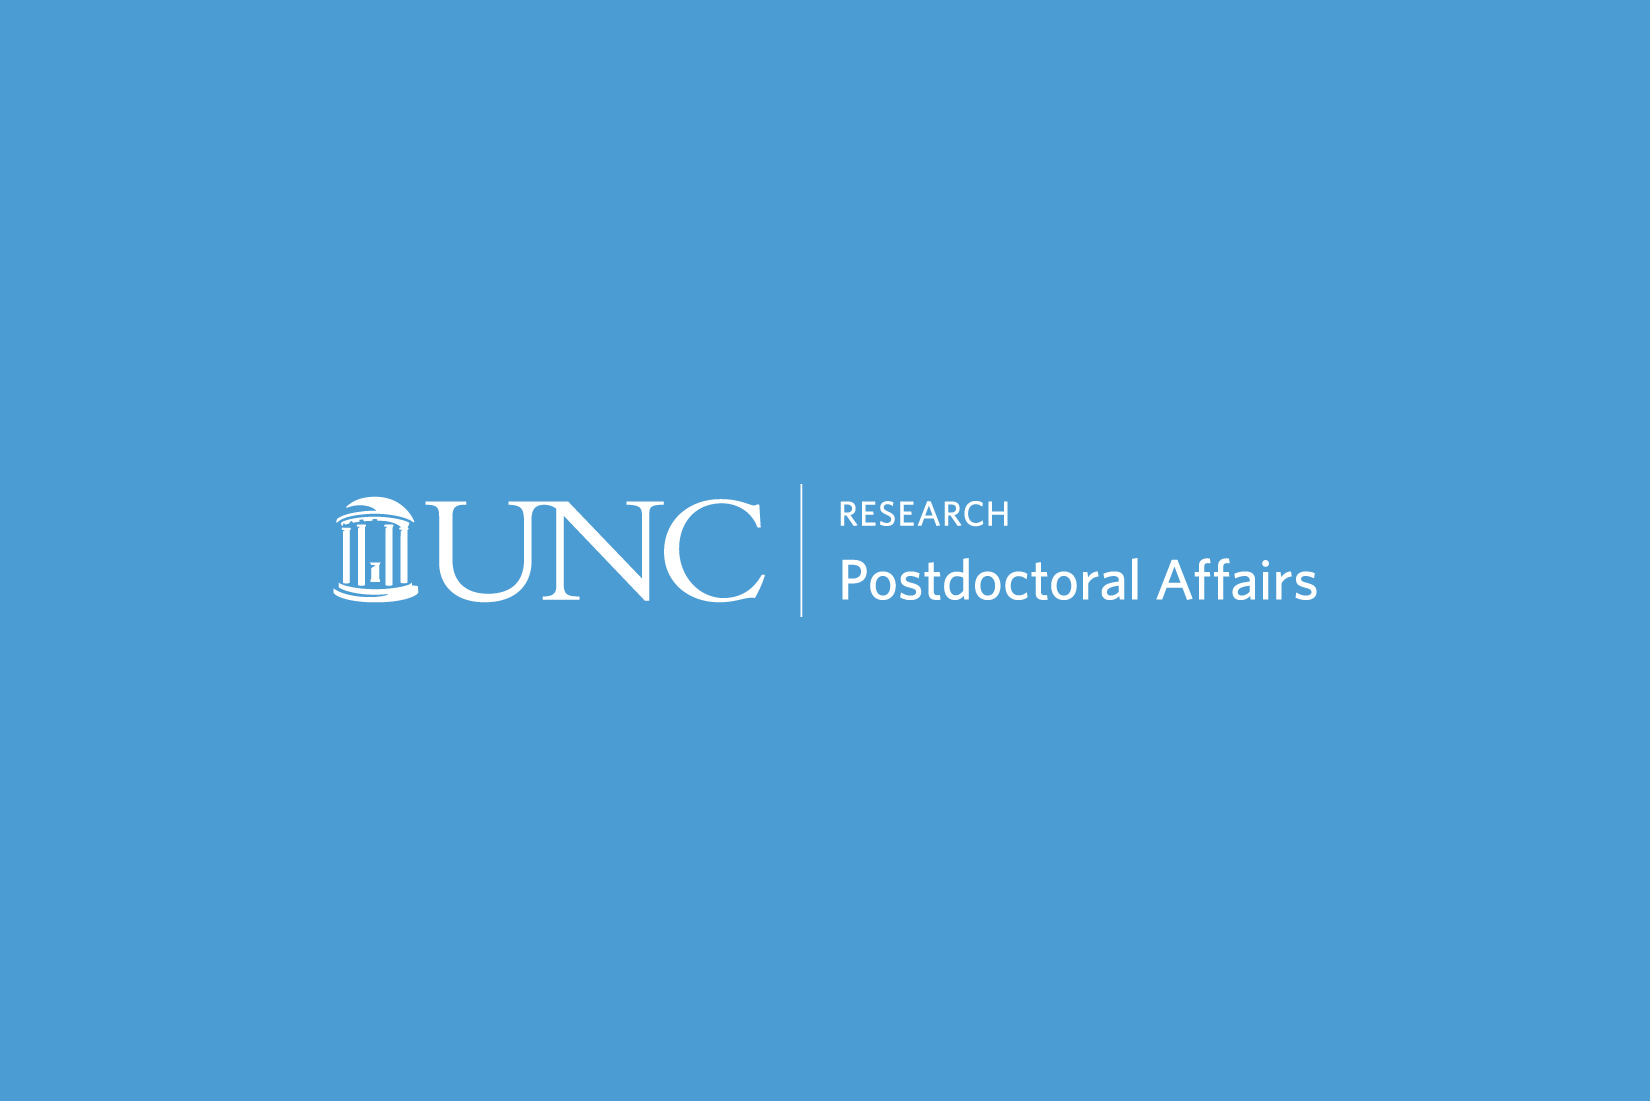 Image of the Office of Postdoctoral Affairs logo on a Carolina blue background.